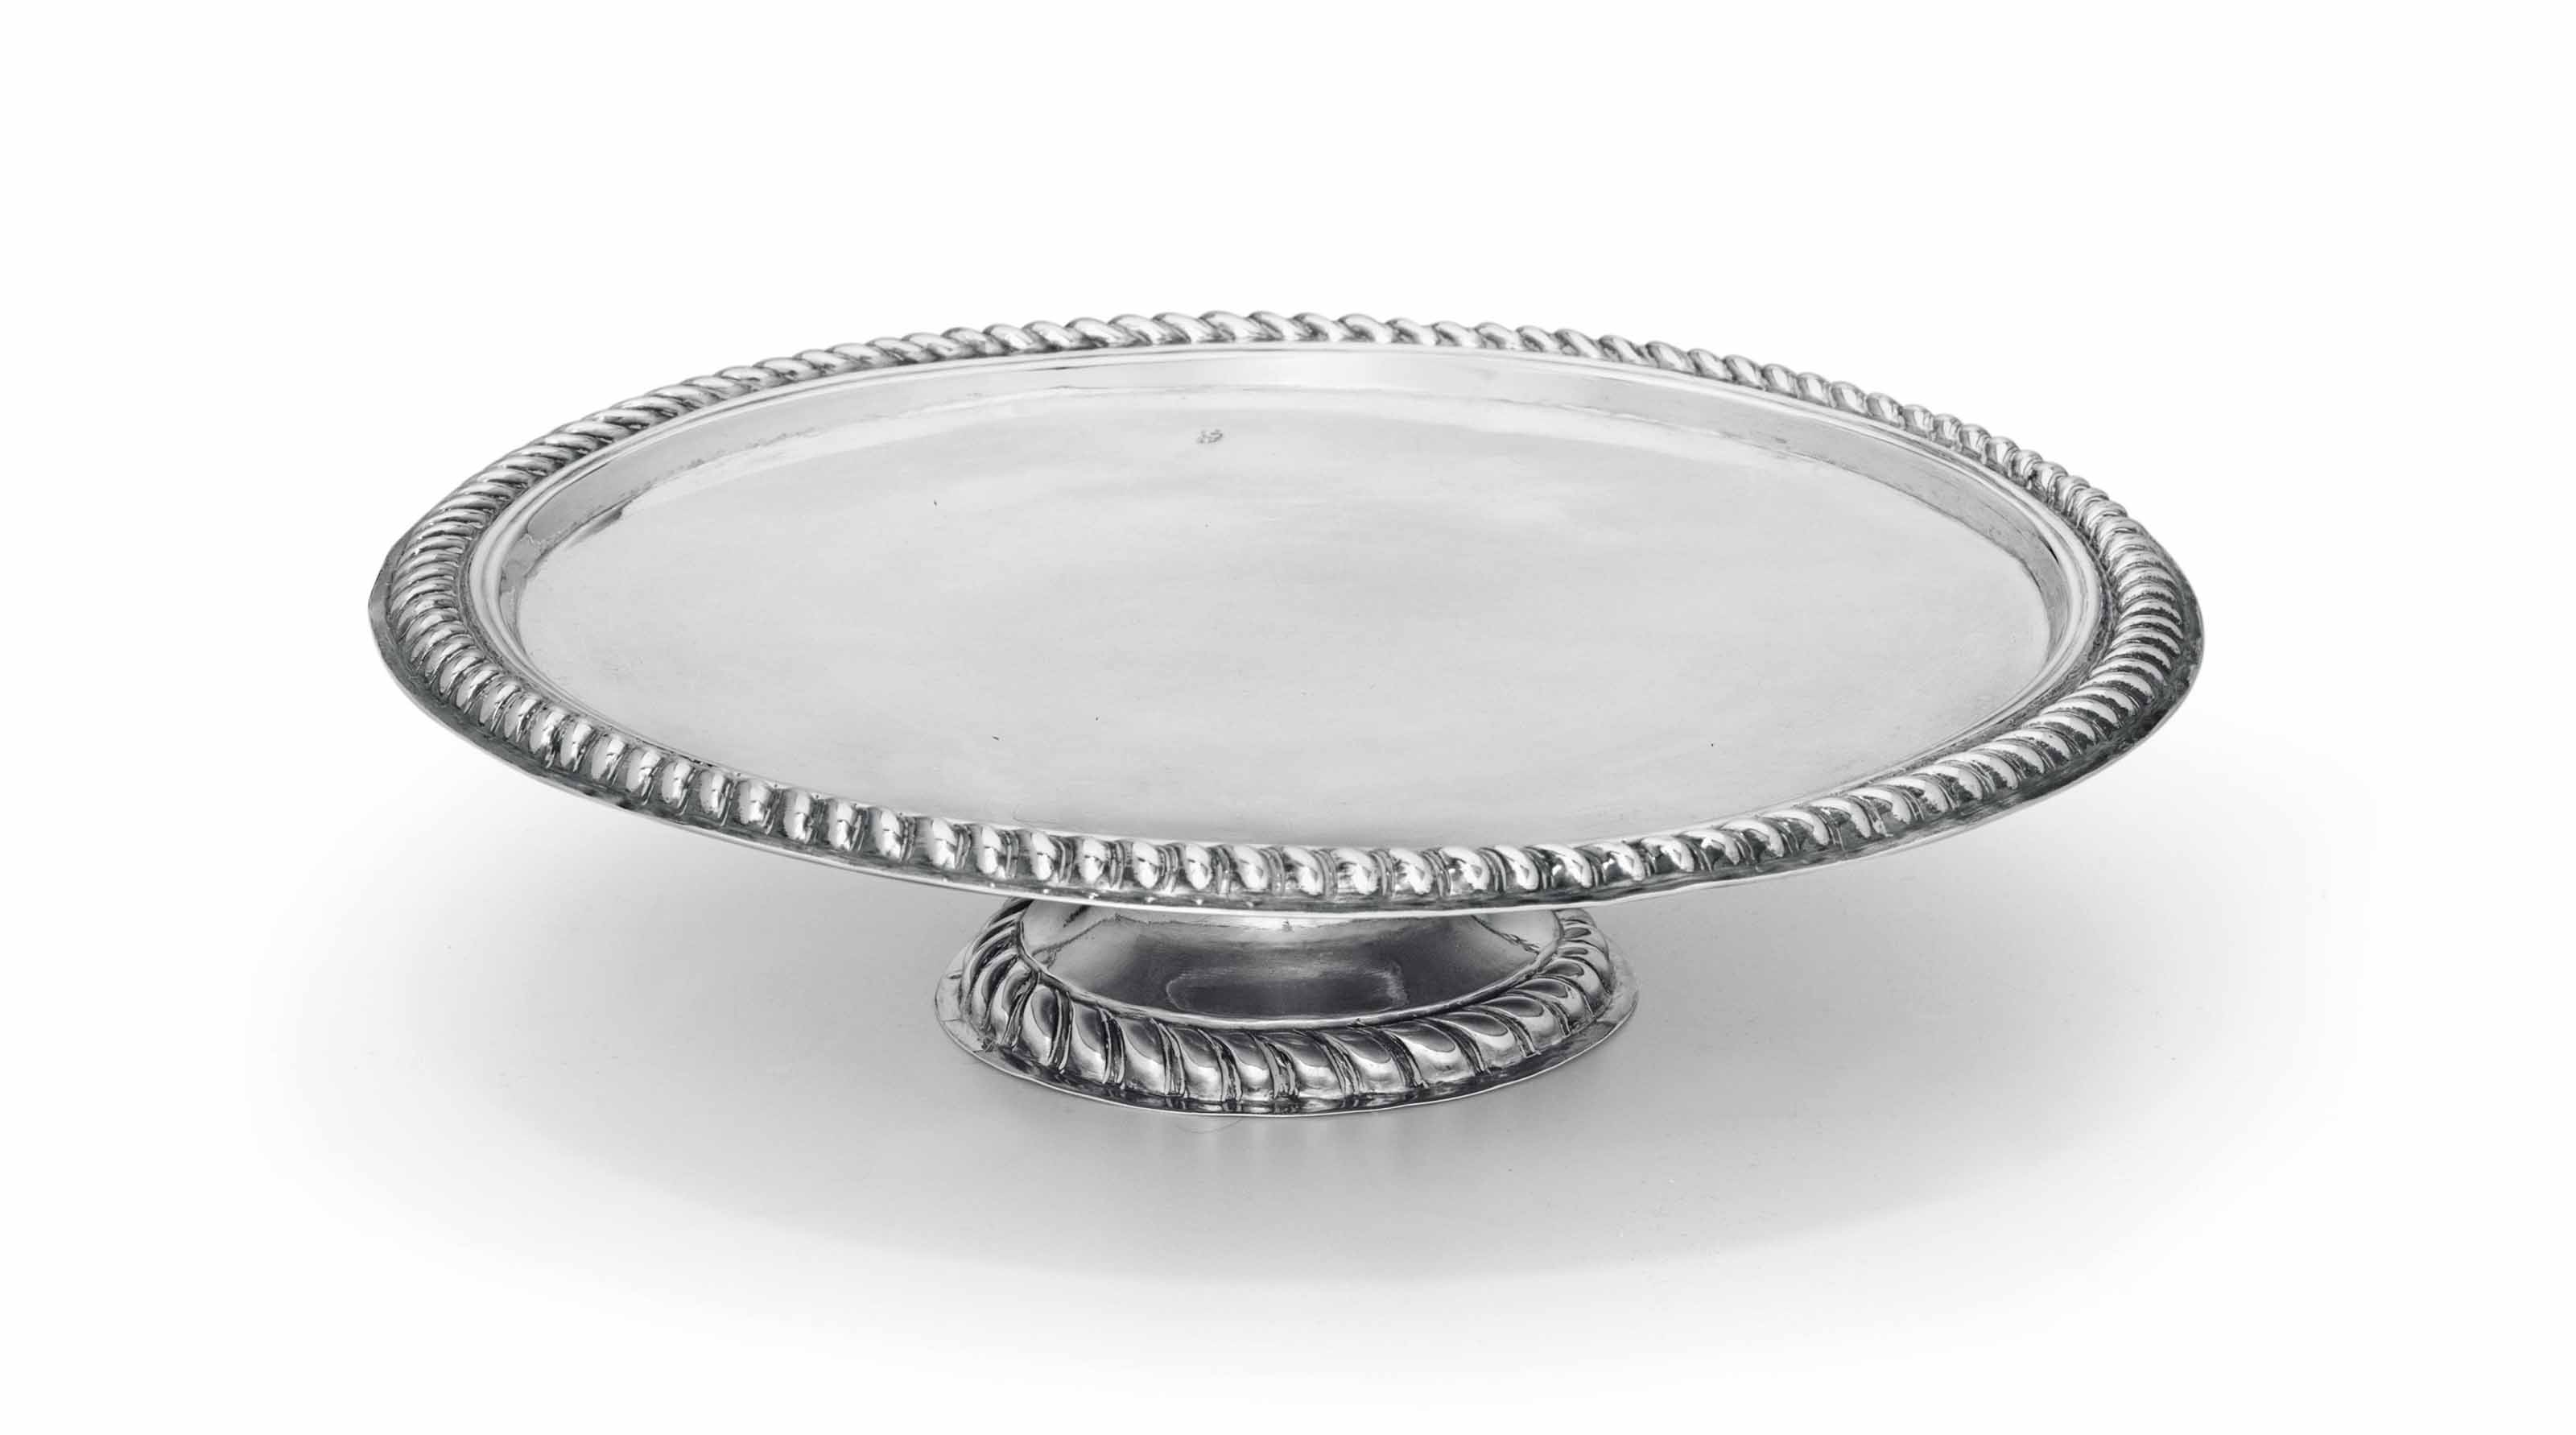 AN AMERICAN SILVER FOOTED SALVER